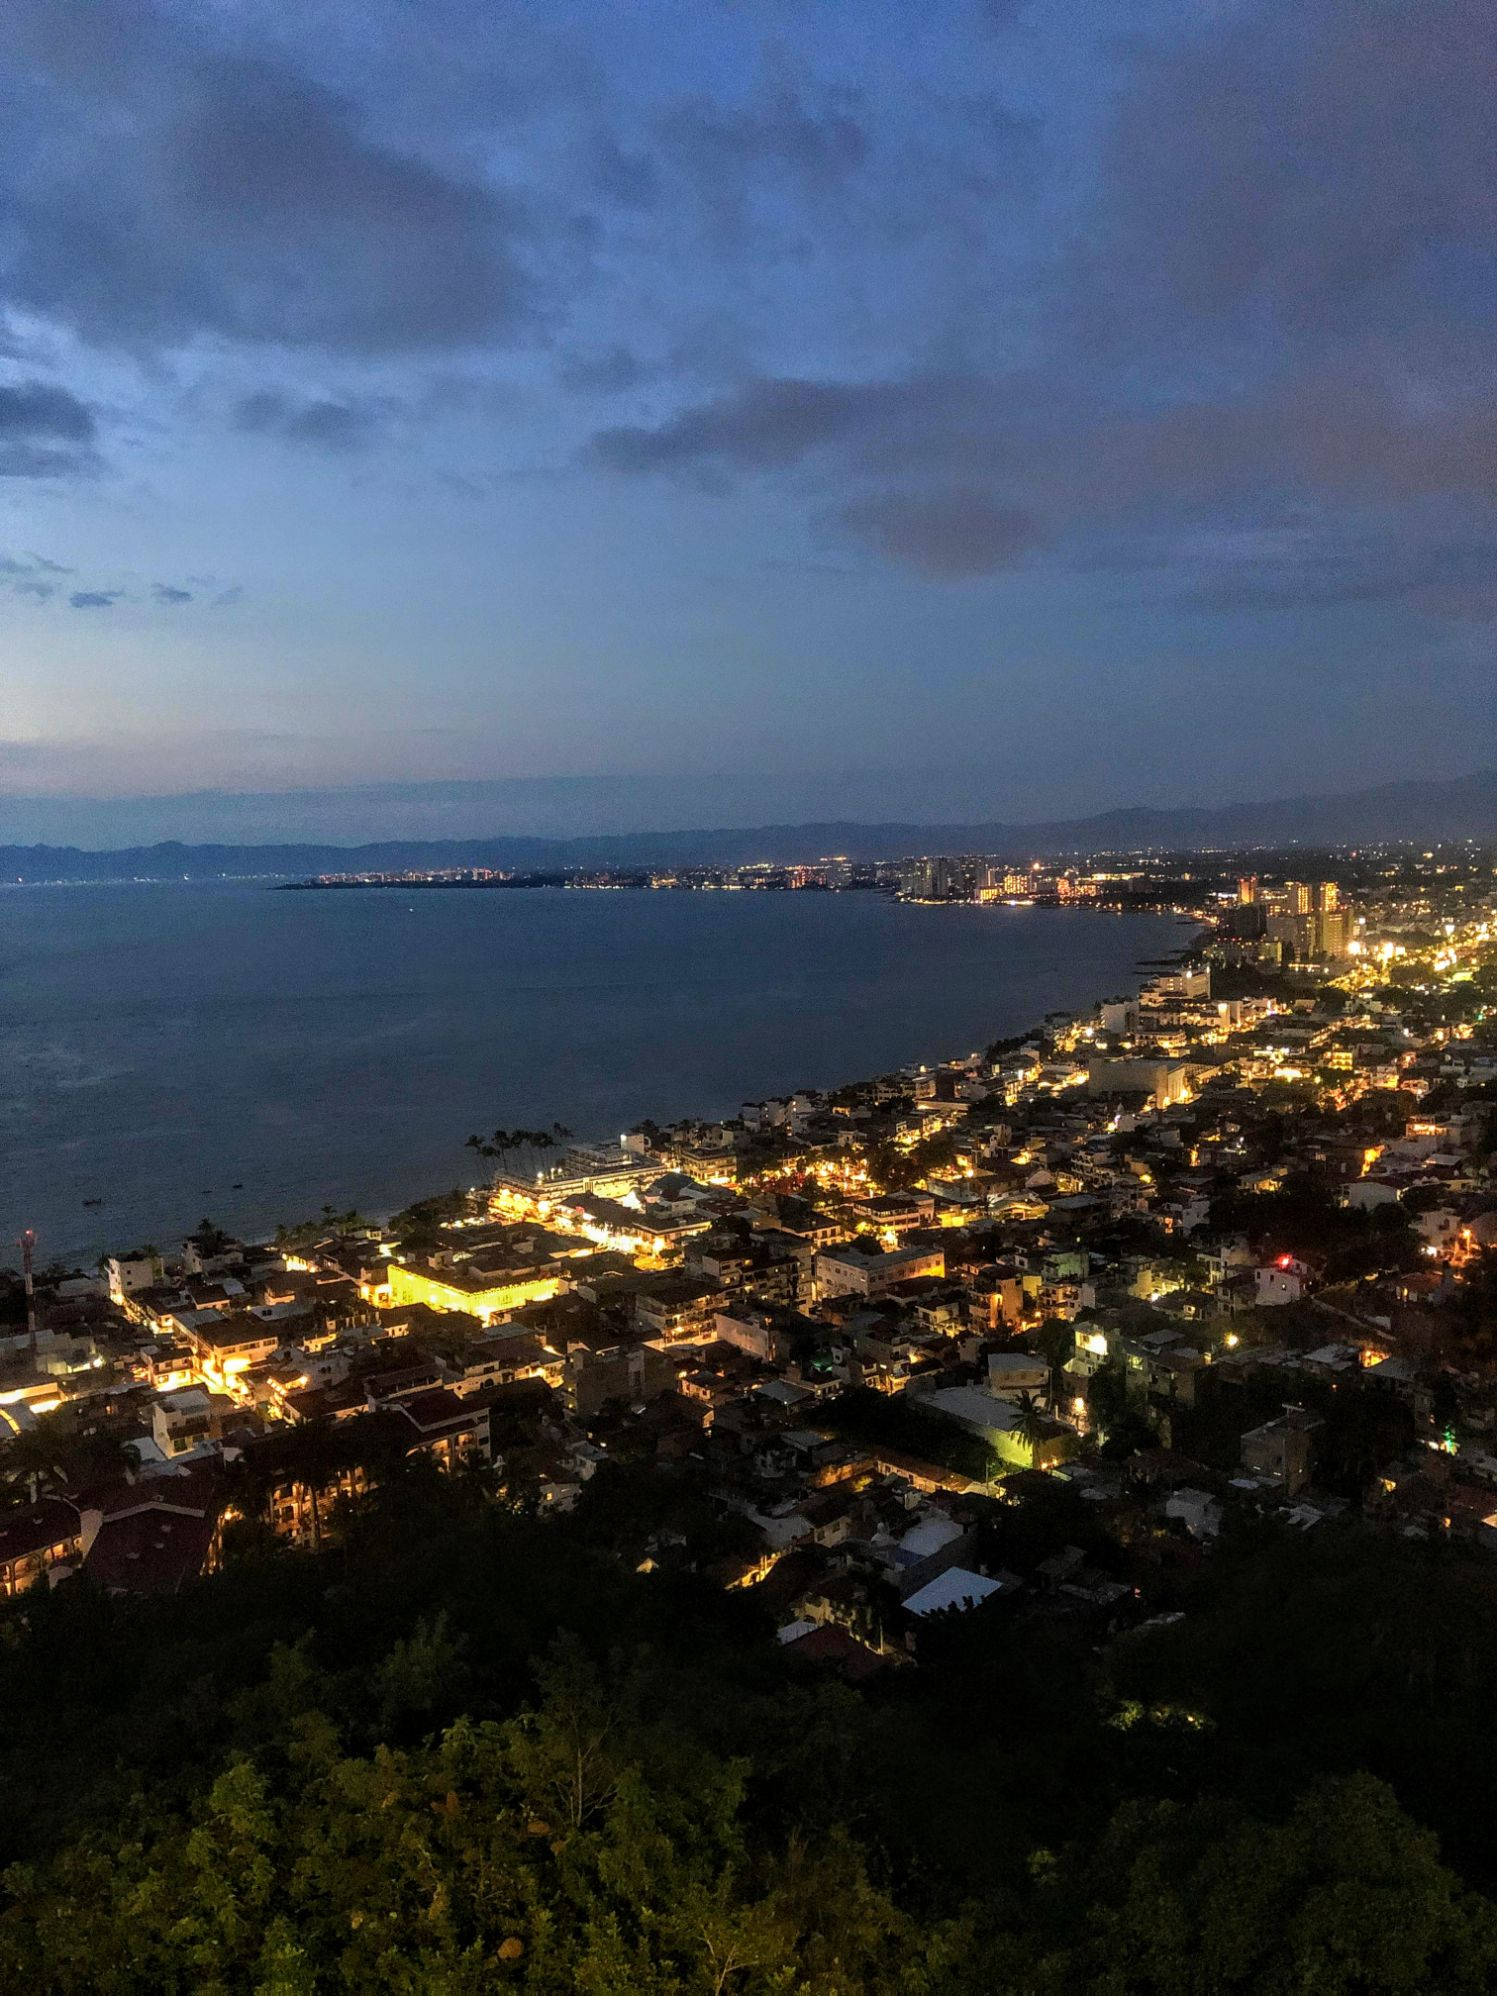 Aerial view of Puerto Vallarta at dusk from the scenic view point